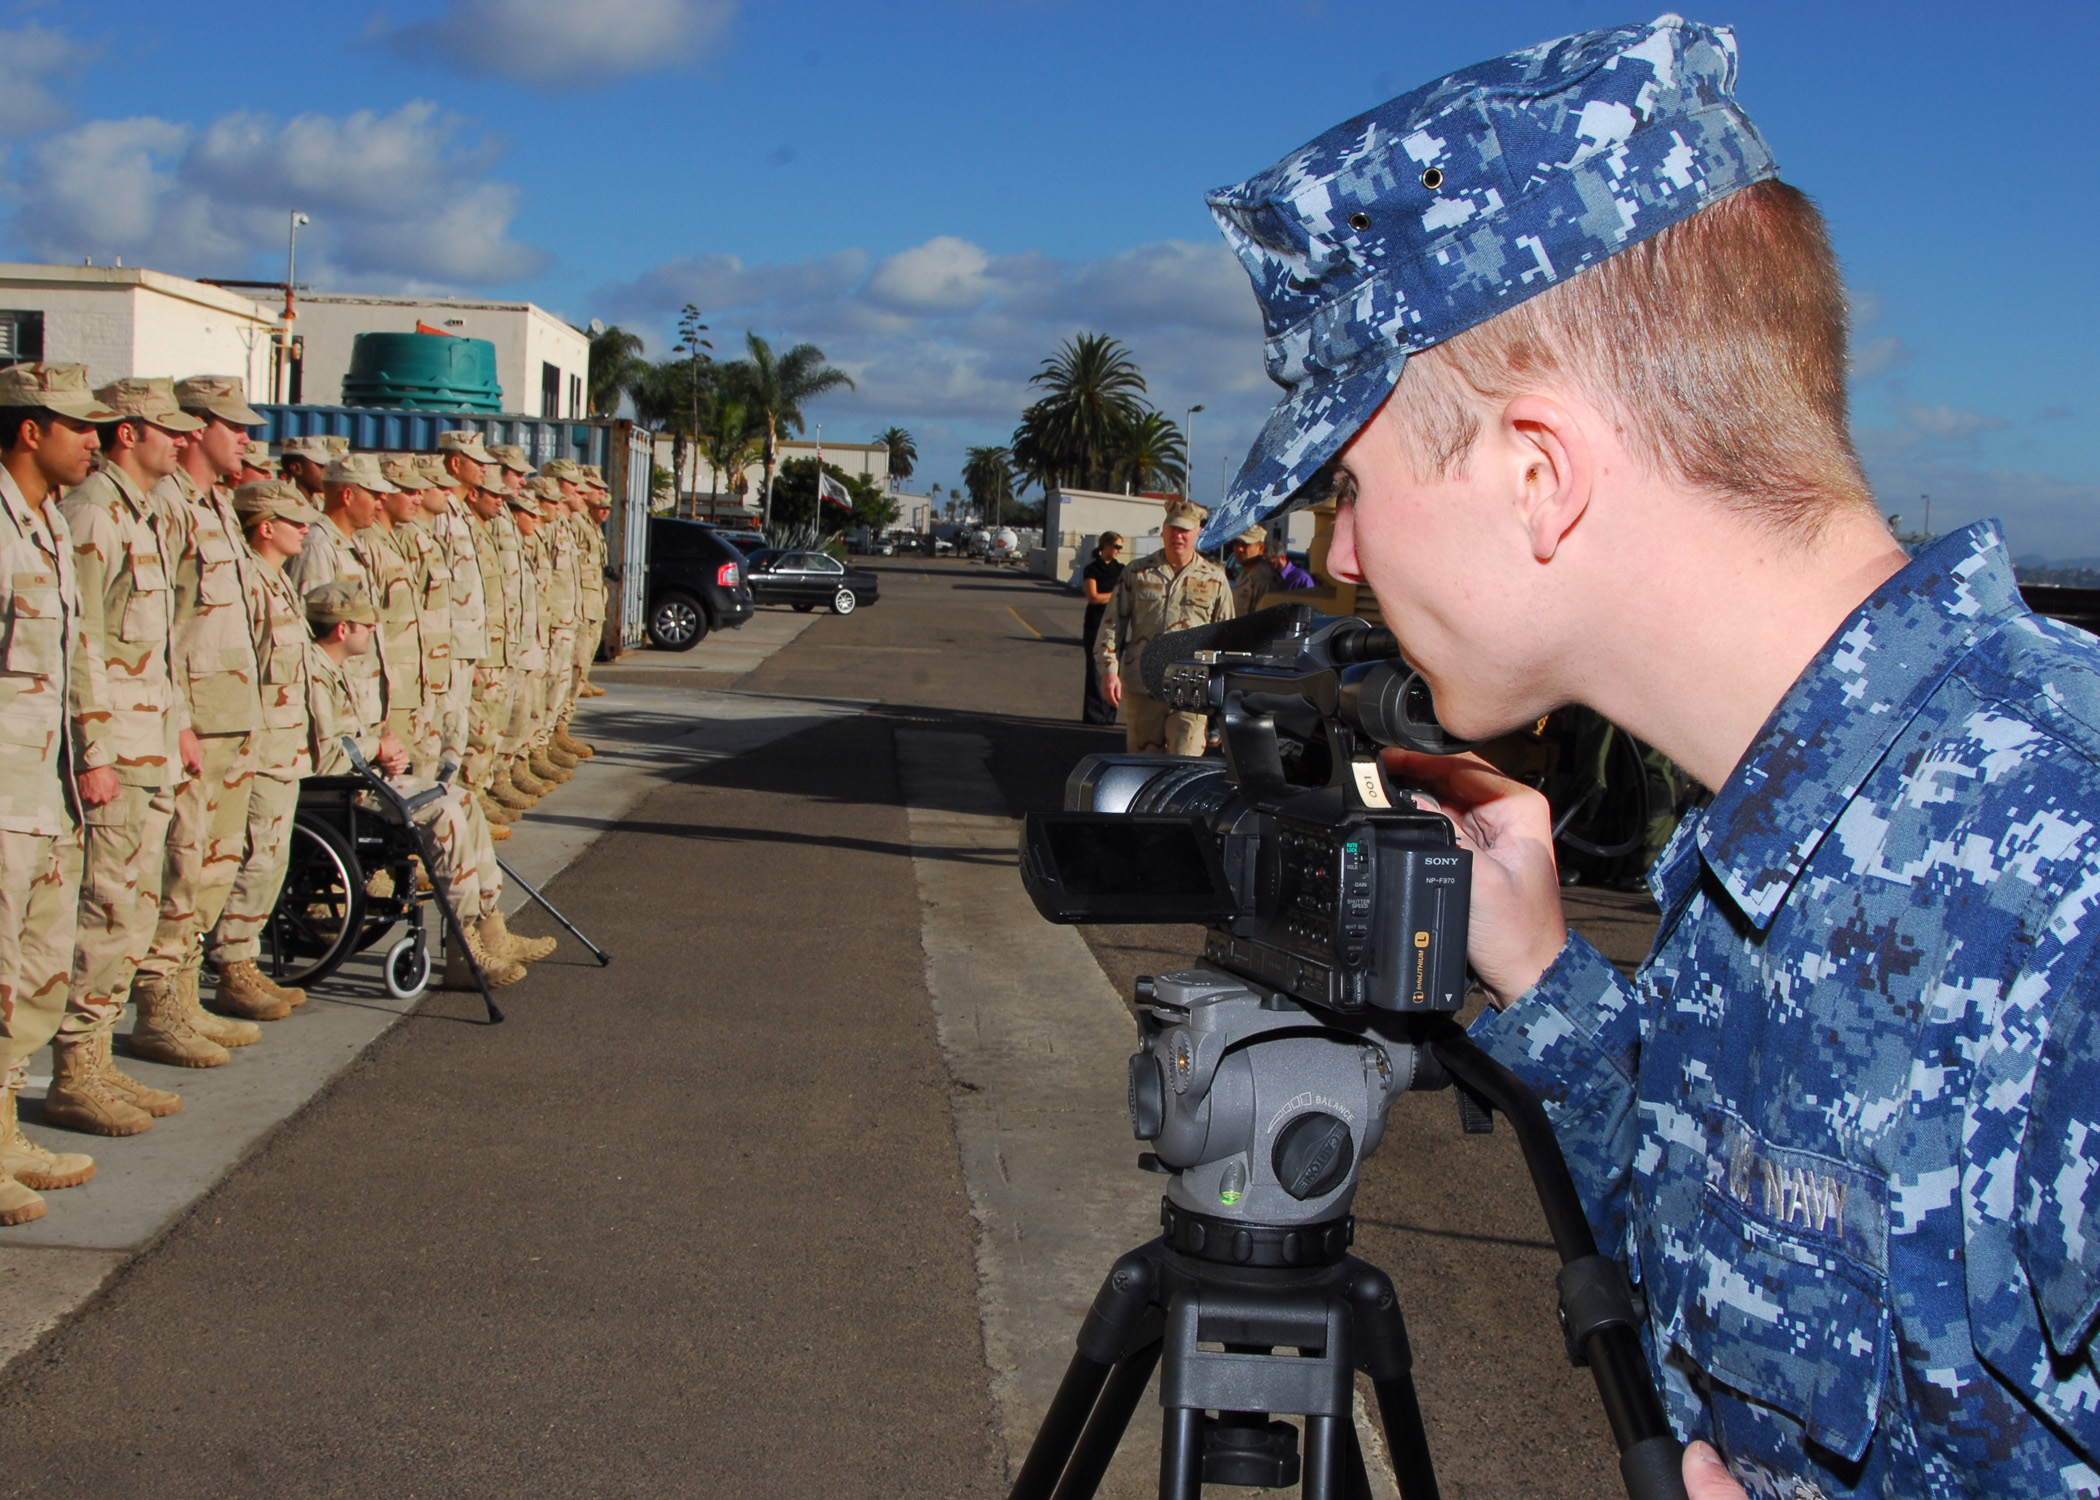 File:US Navy 101122-N-0046R-022 Mass Communication Specialist ...